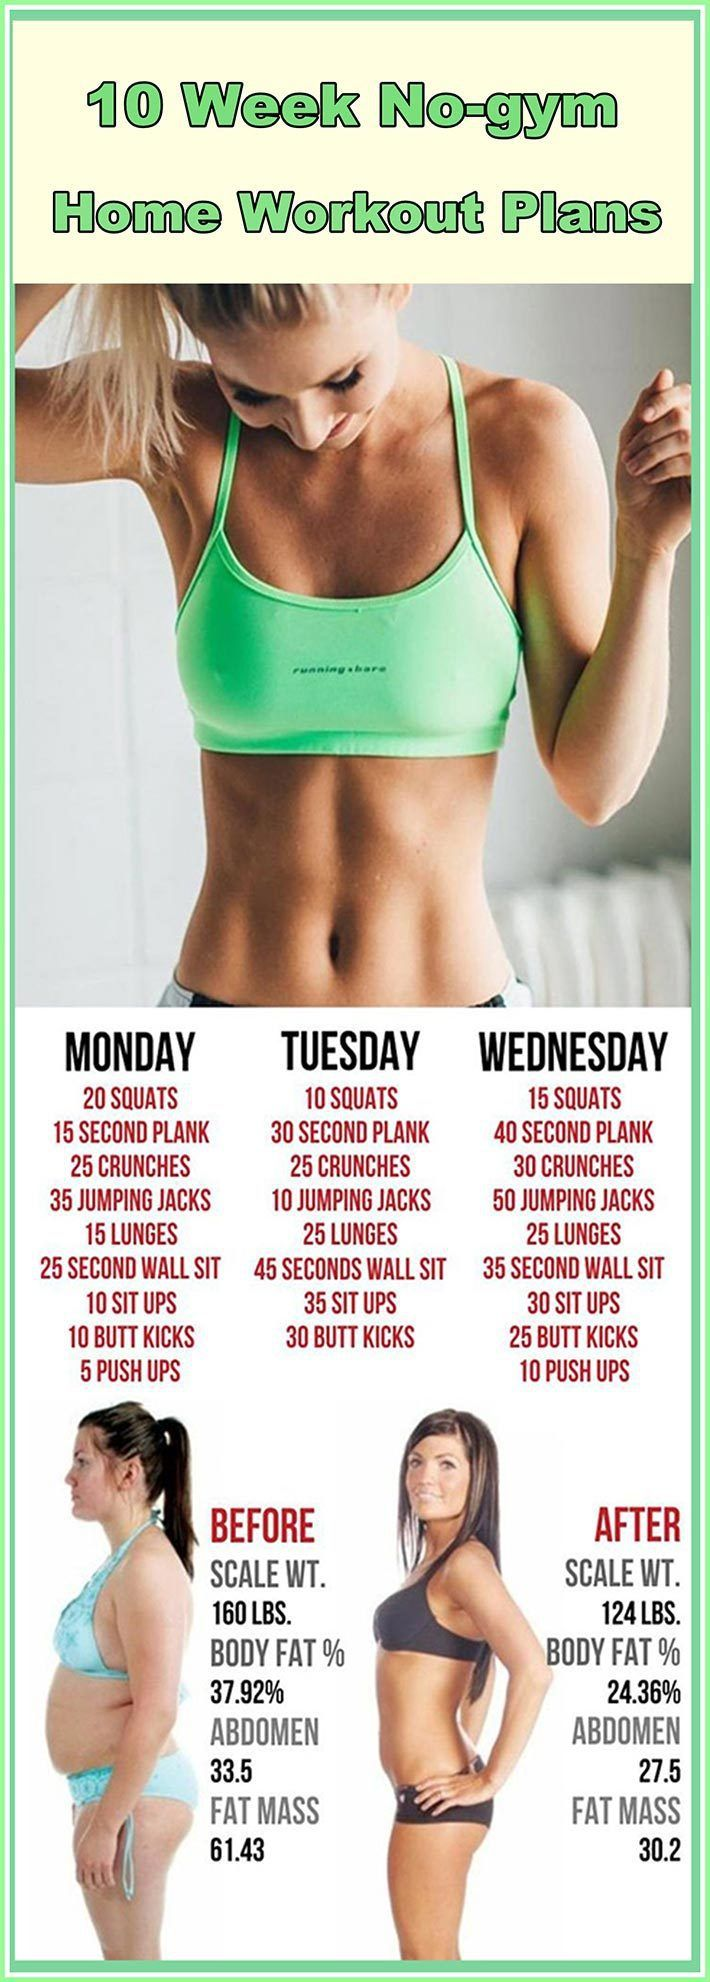 10 Week No-gym Home Workout Plans#plans#workout#home#no-gym#fitness